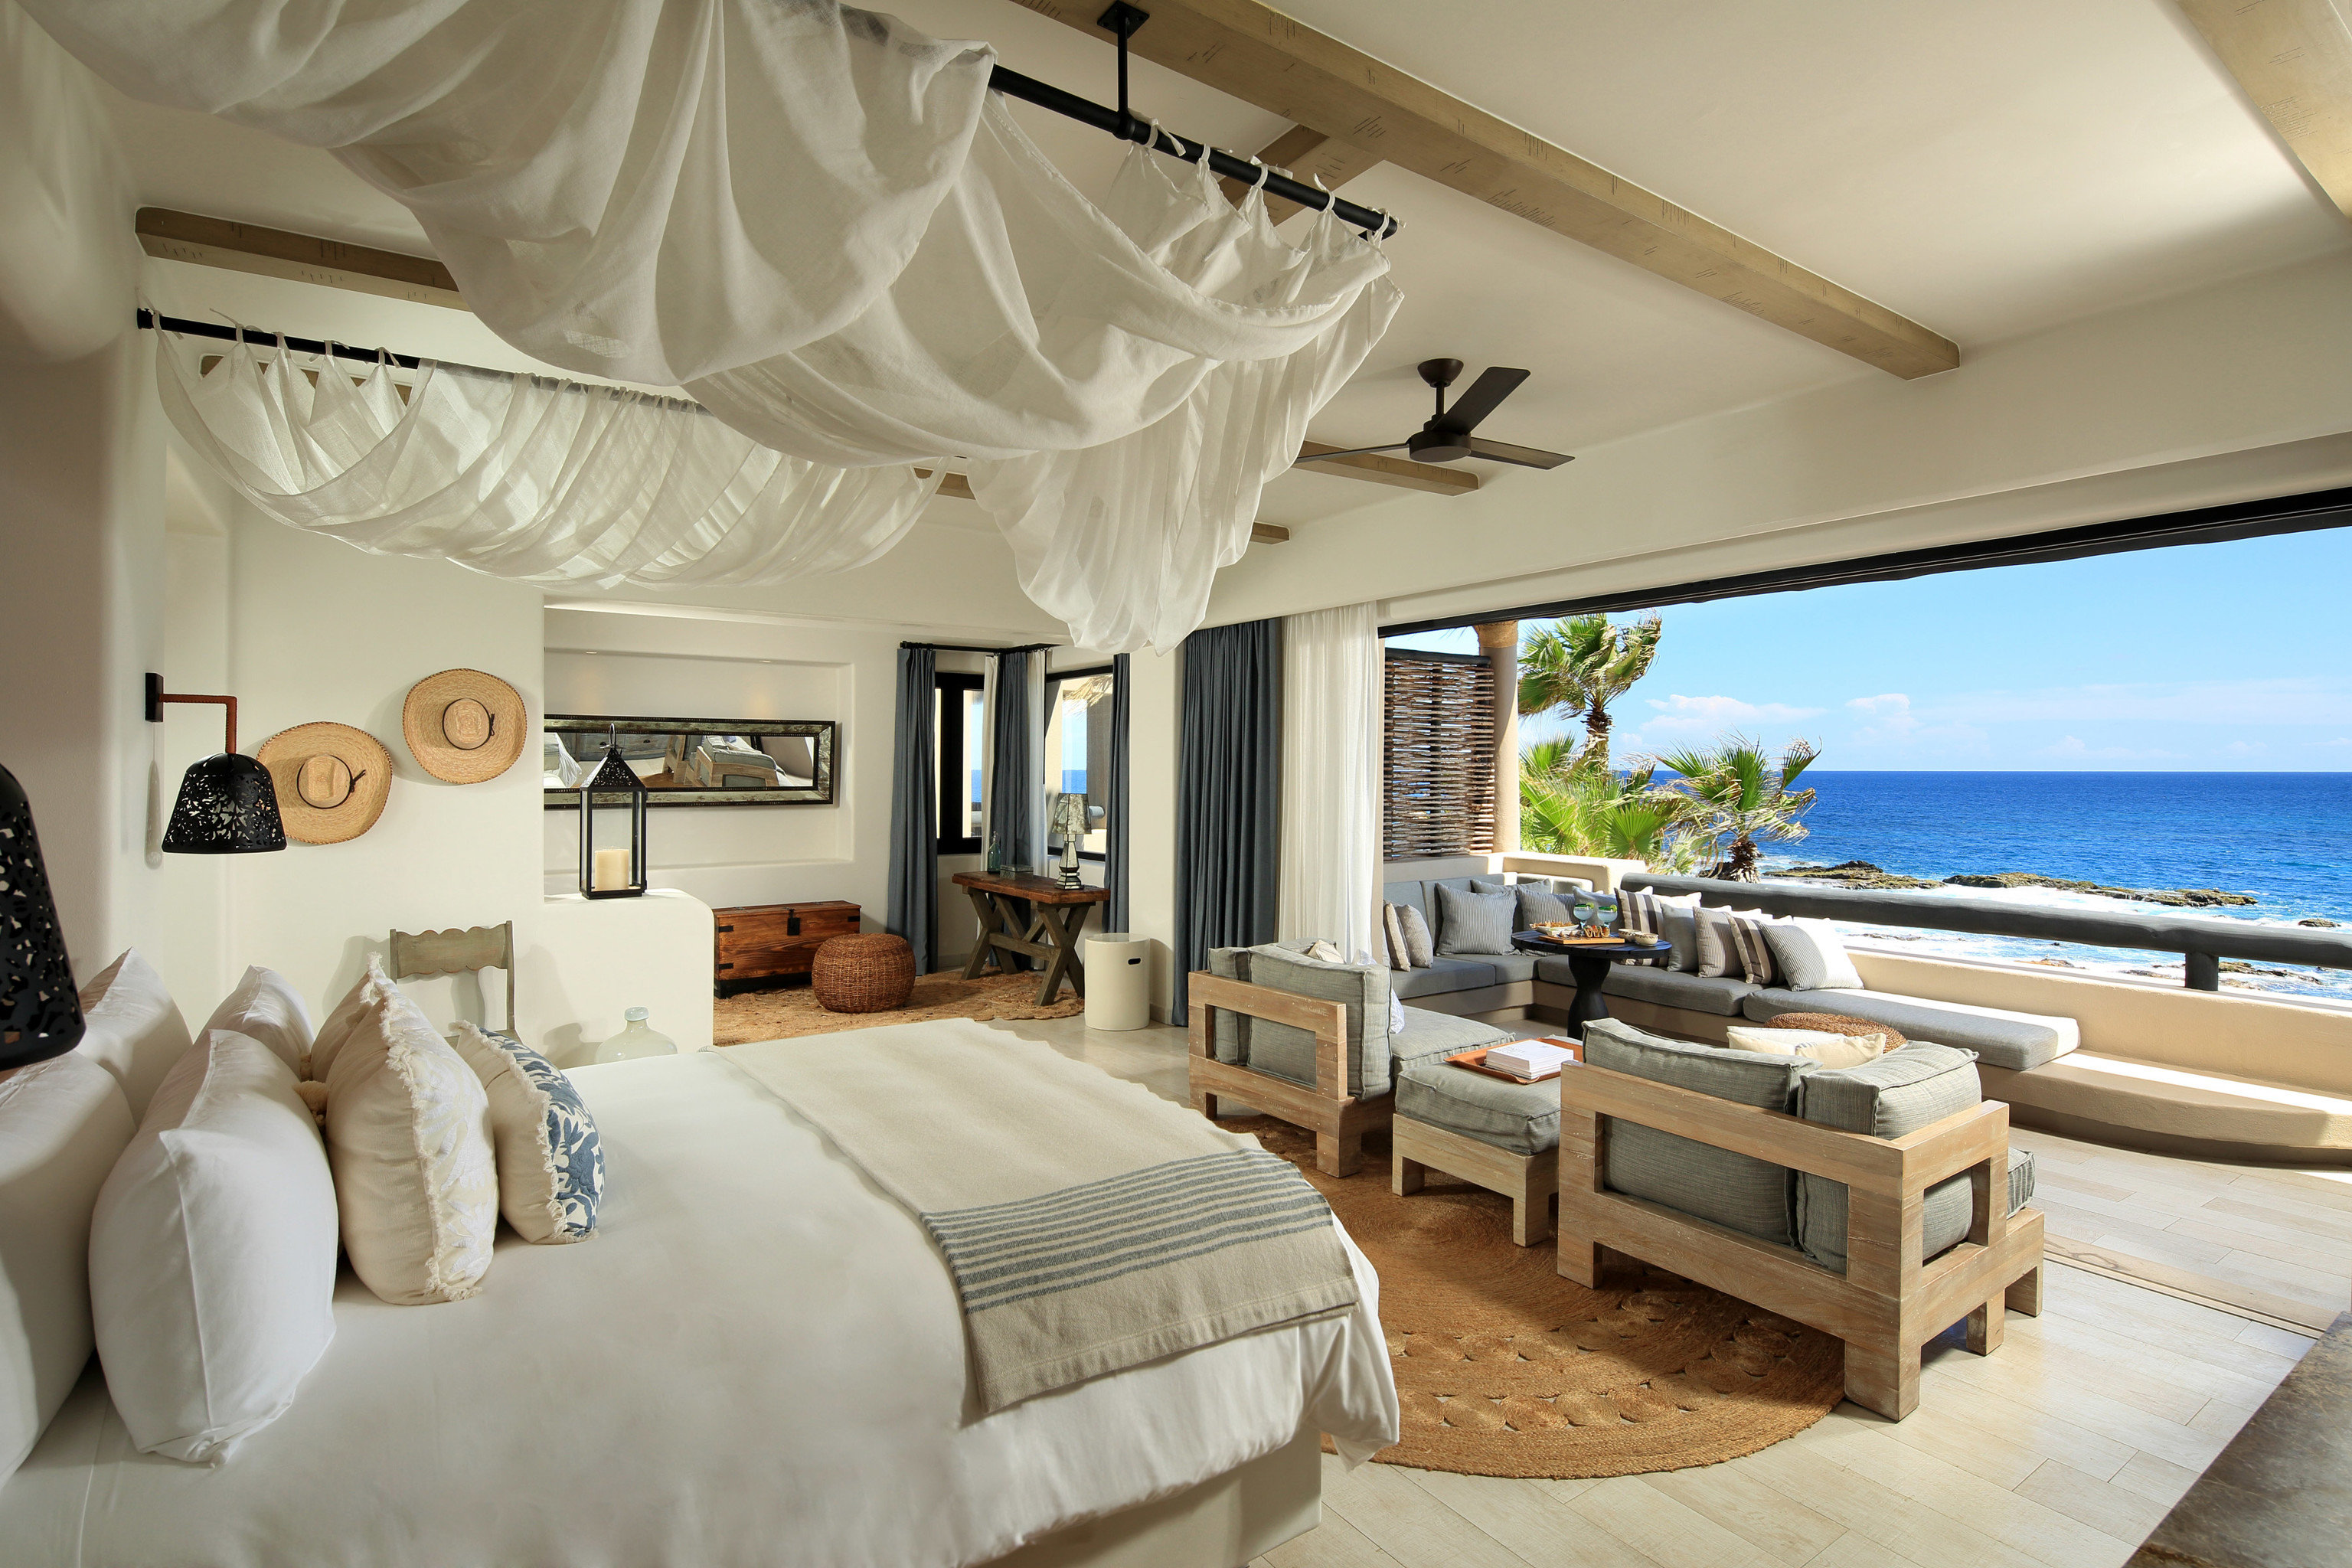 Beauty Hotels Romance Trip Ideas property Bedroom Villa Suite living room home Resort cottage mansion